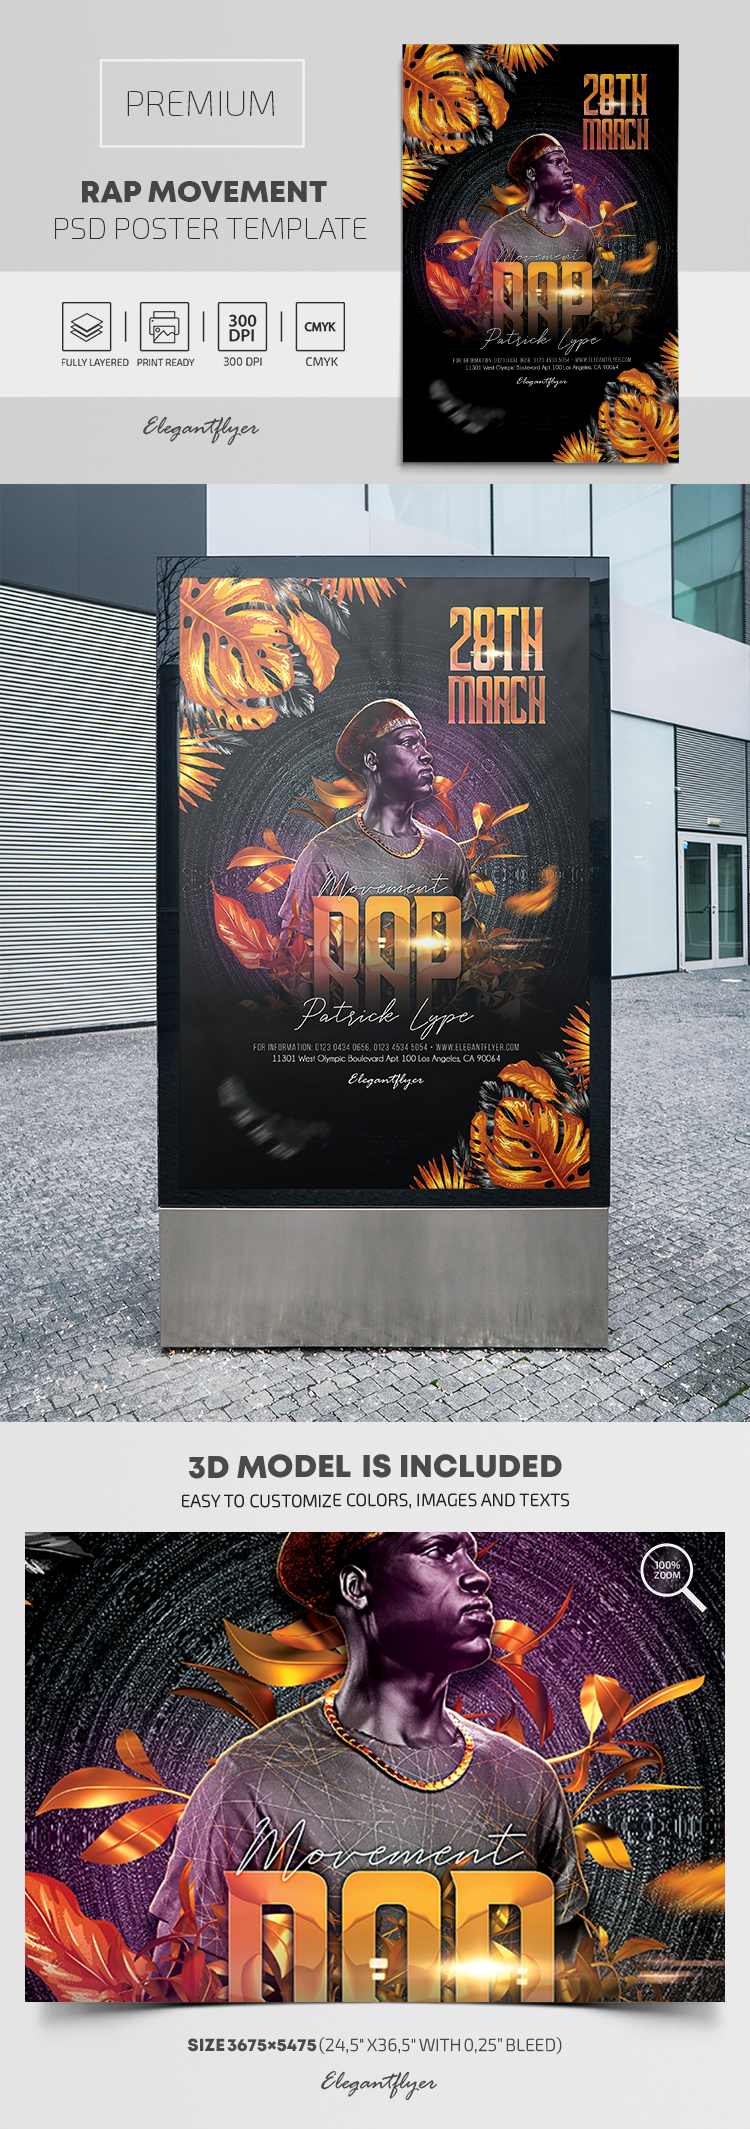 Rap Movement – Premium PSD Poster Template